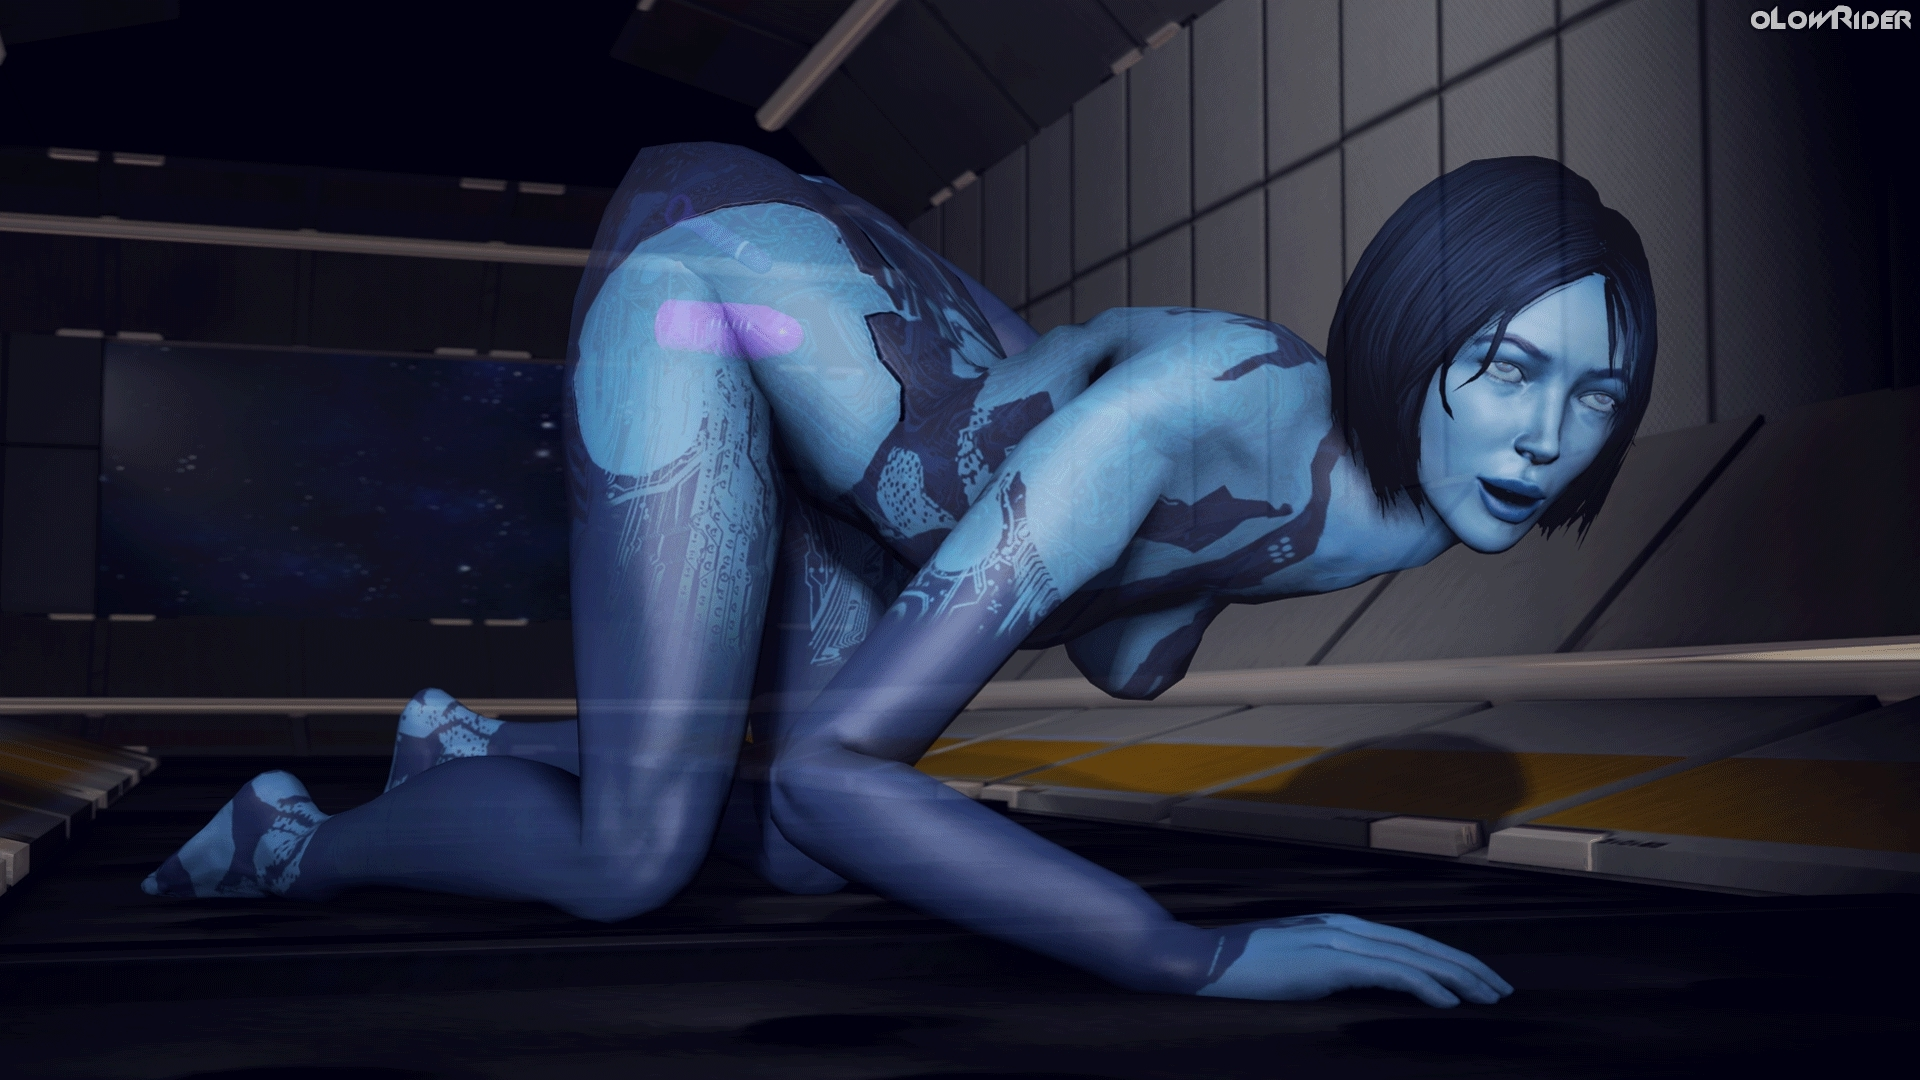 Cortana halo xvideo hentai gallery